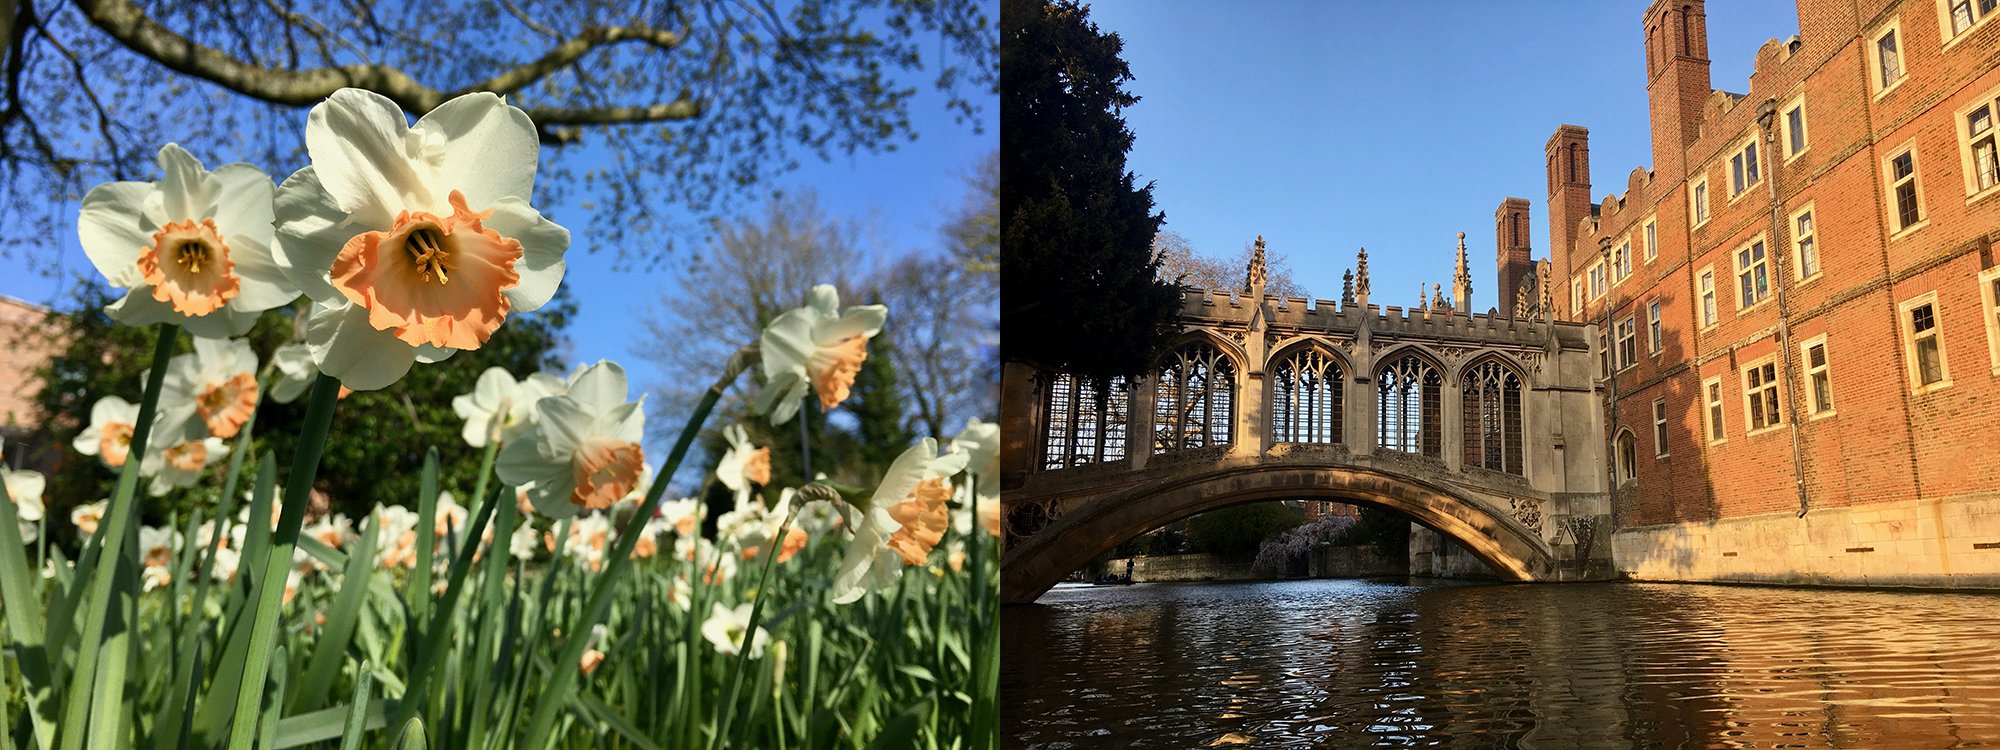 Left: daffodils in full bloom. Right: Bridge of Sighs as seen from the River Cam.